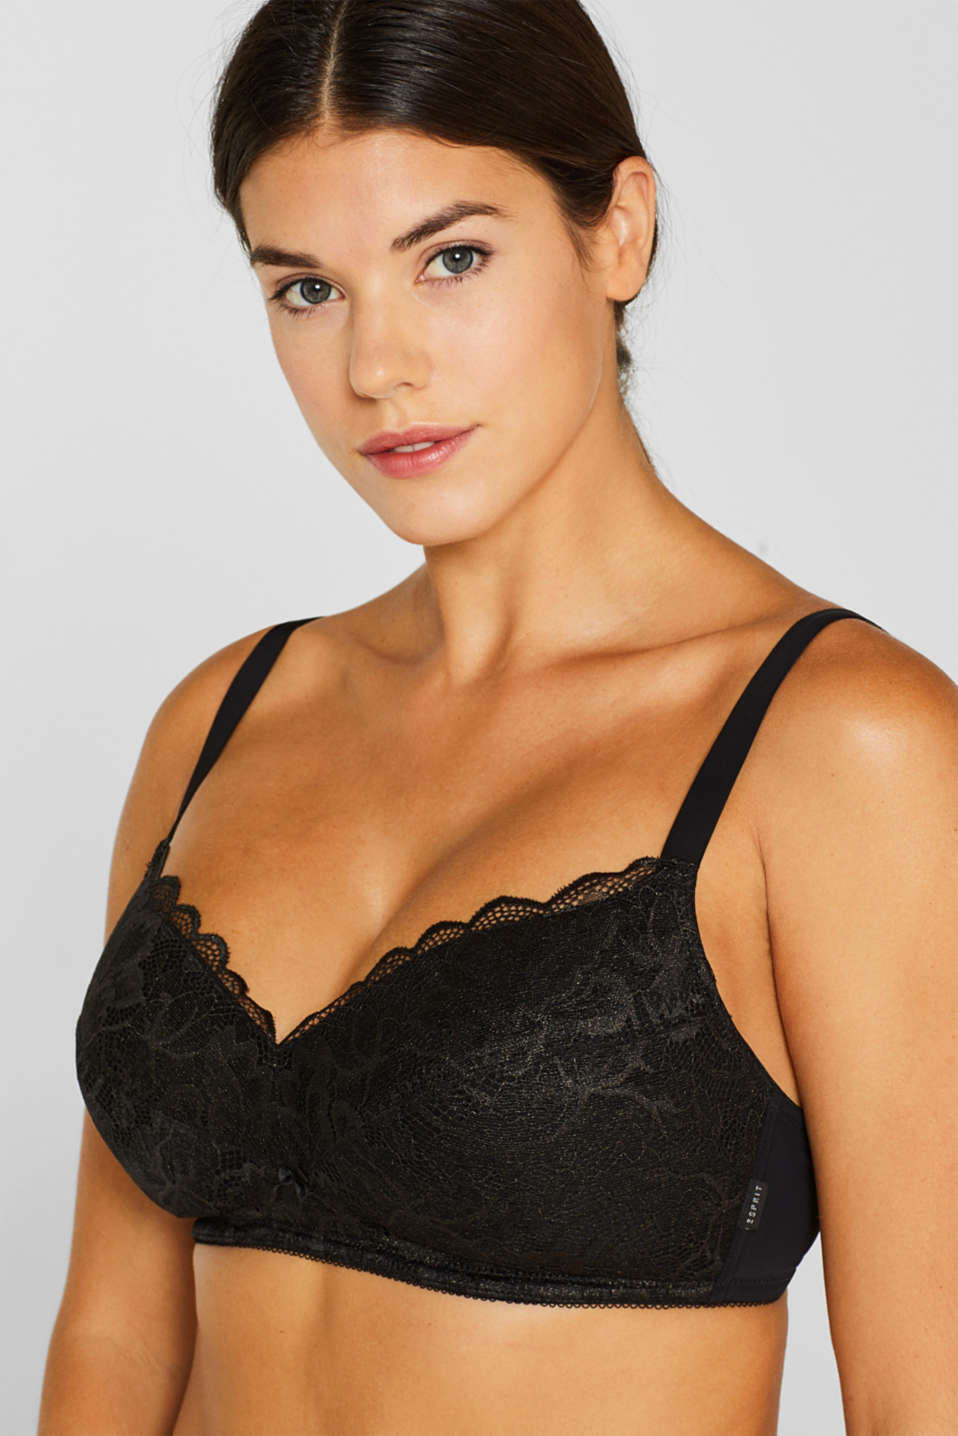 Padded, non-wired lace bra for large cup sizes, BLACK, detail image number 2